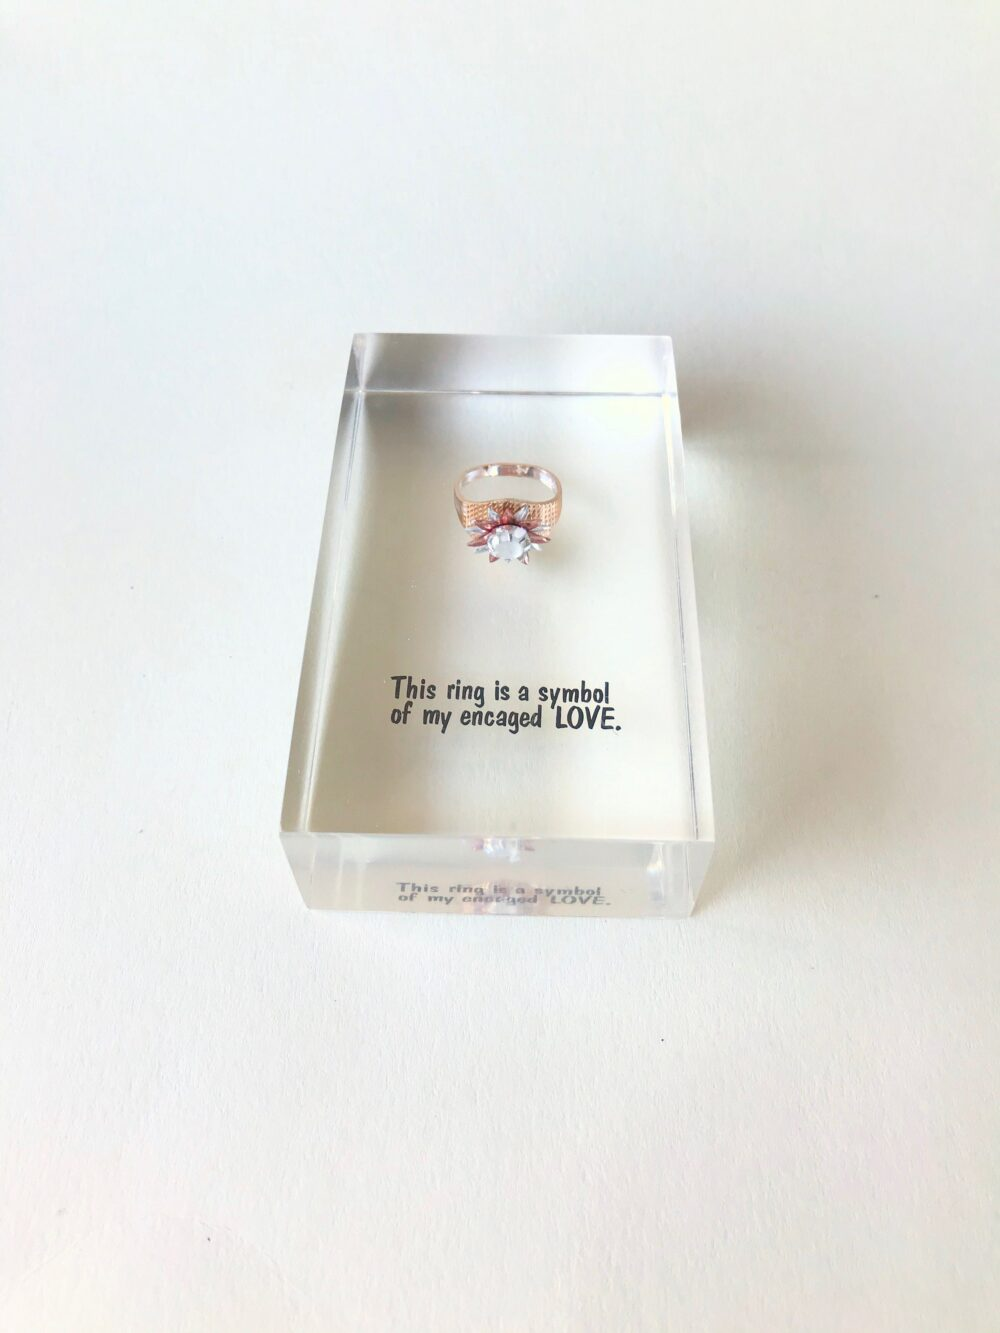 Vintage Acrylic Brick With Suspended Ring Inside, Symbol Of Love Ring, Funny